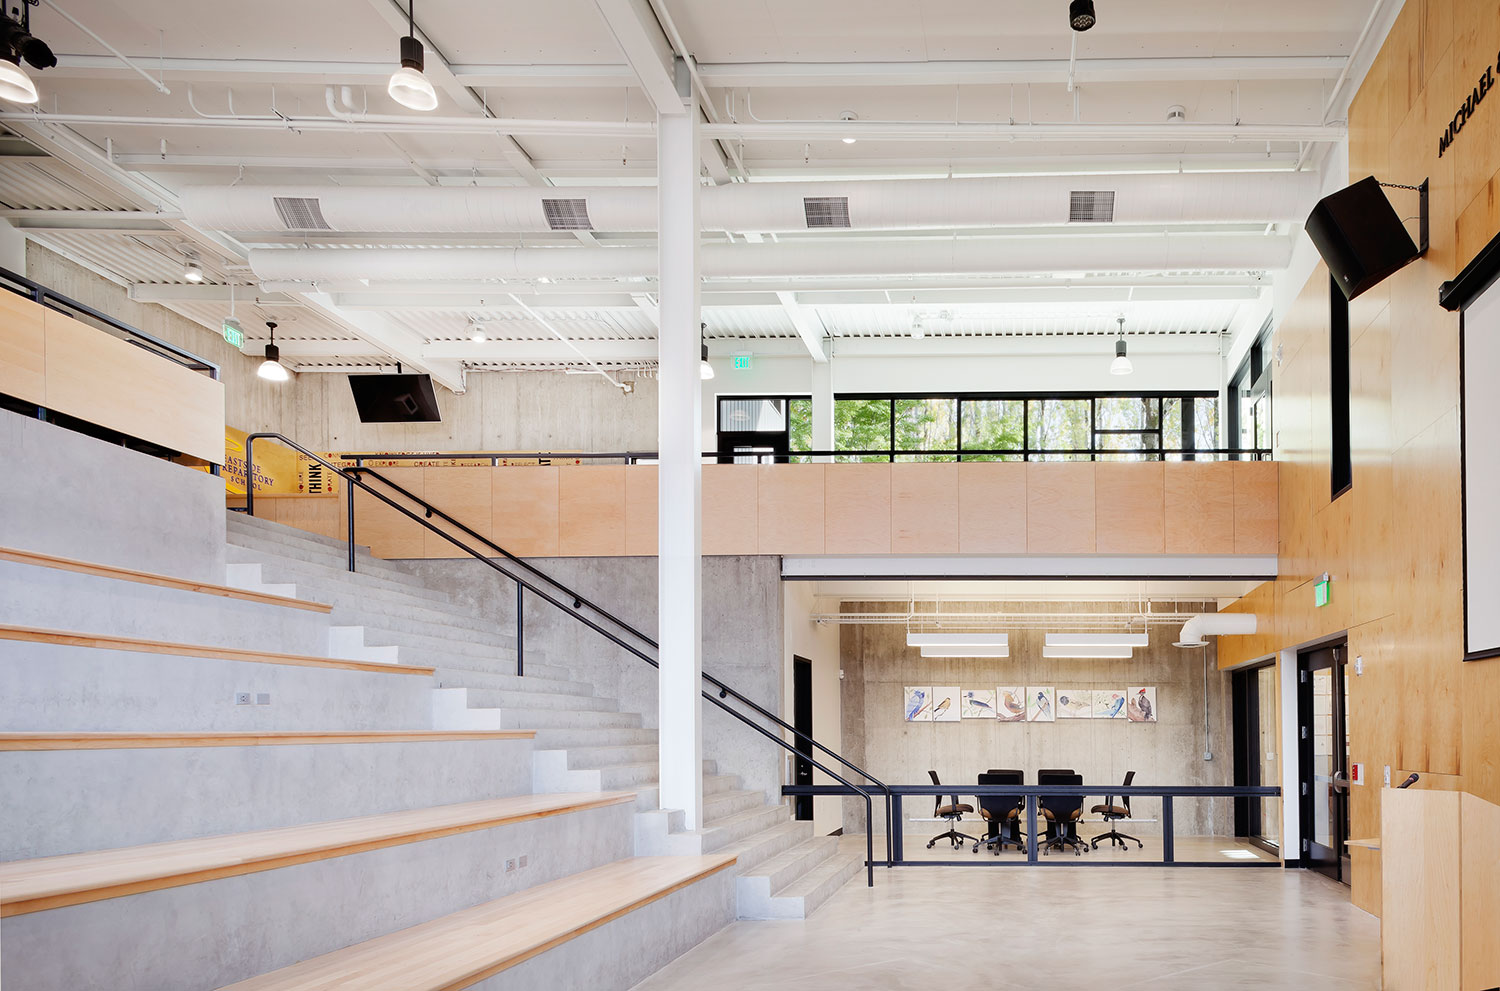 School lounge, stairs, and conference room